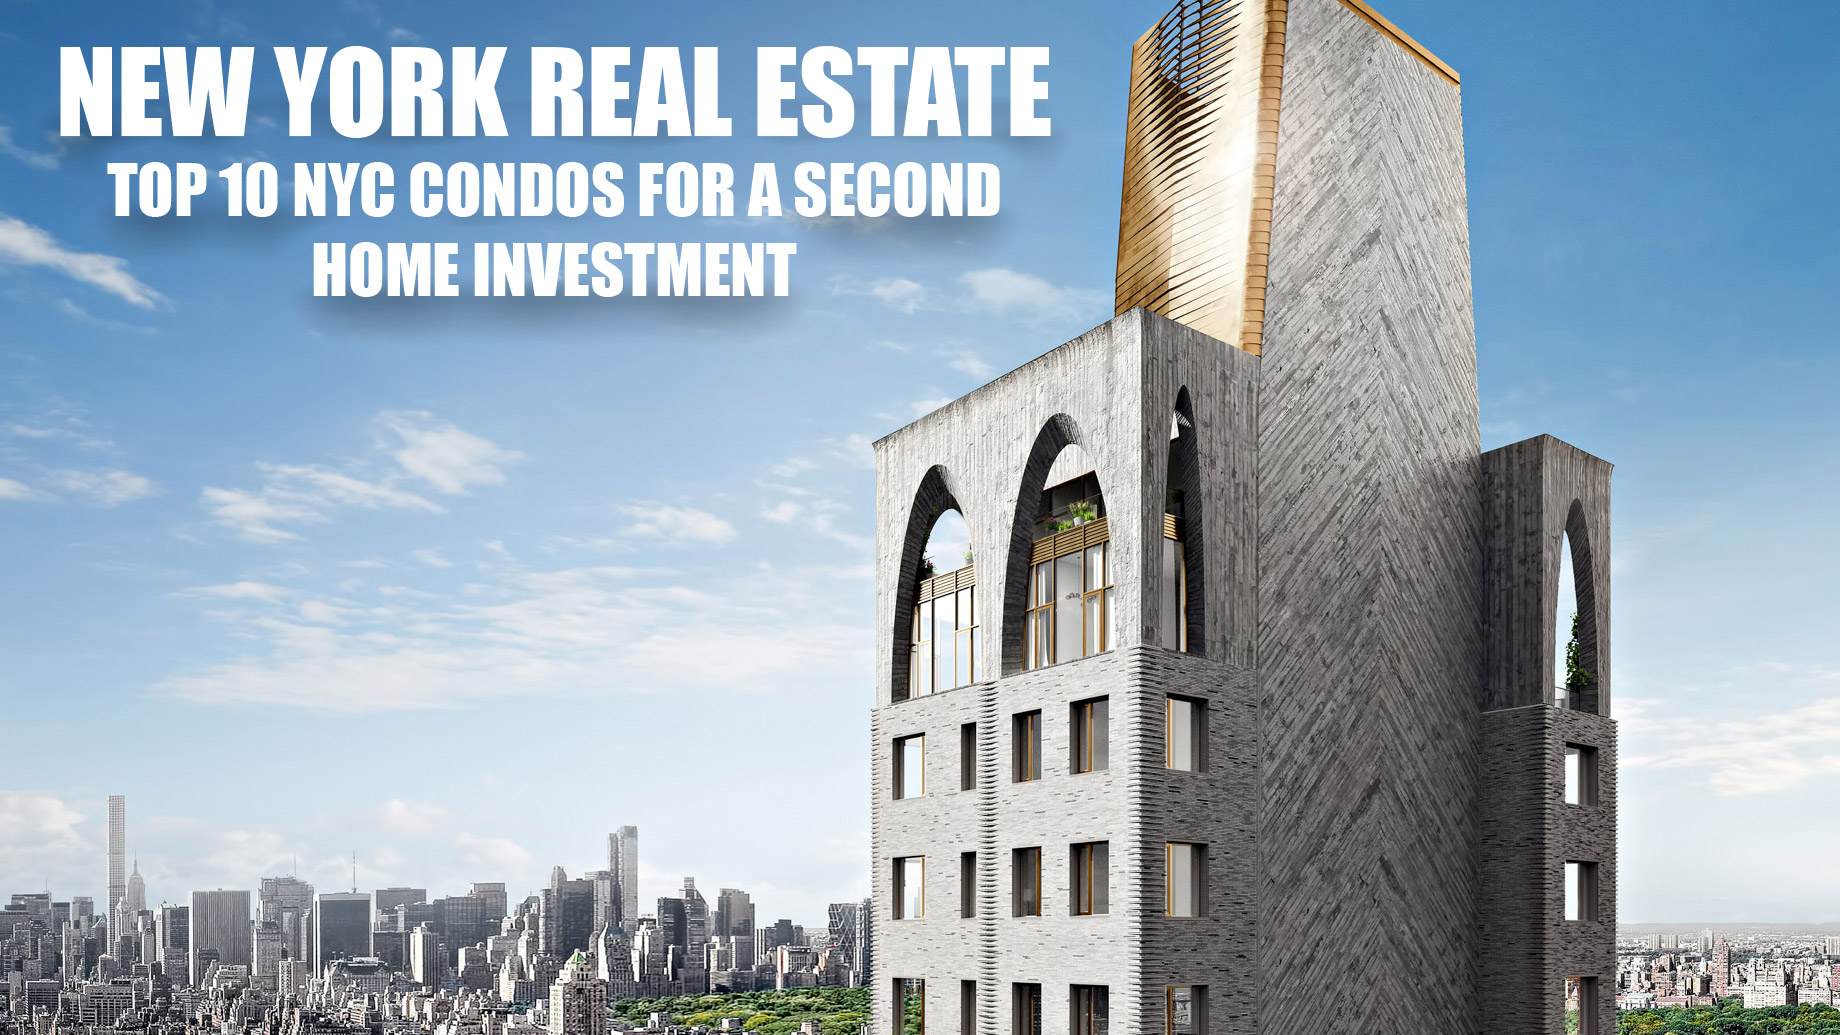 New York Real Estate - Top 10 NYC Condos for a Second Home Investment